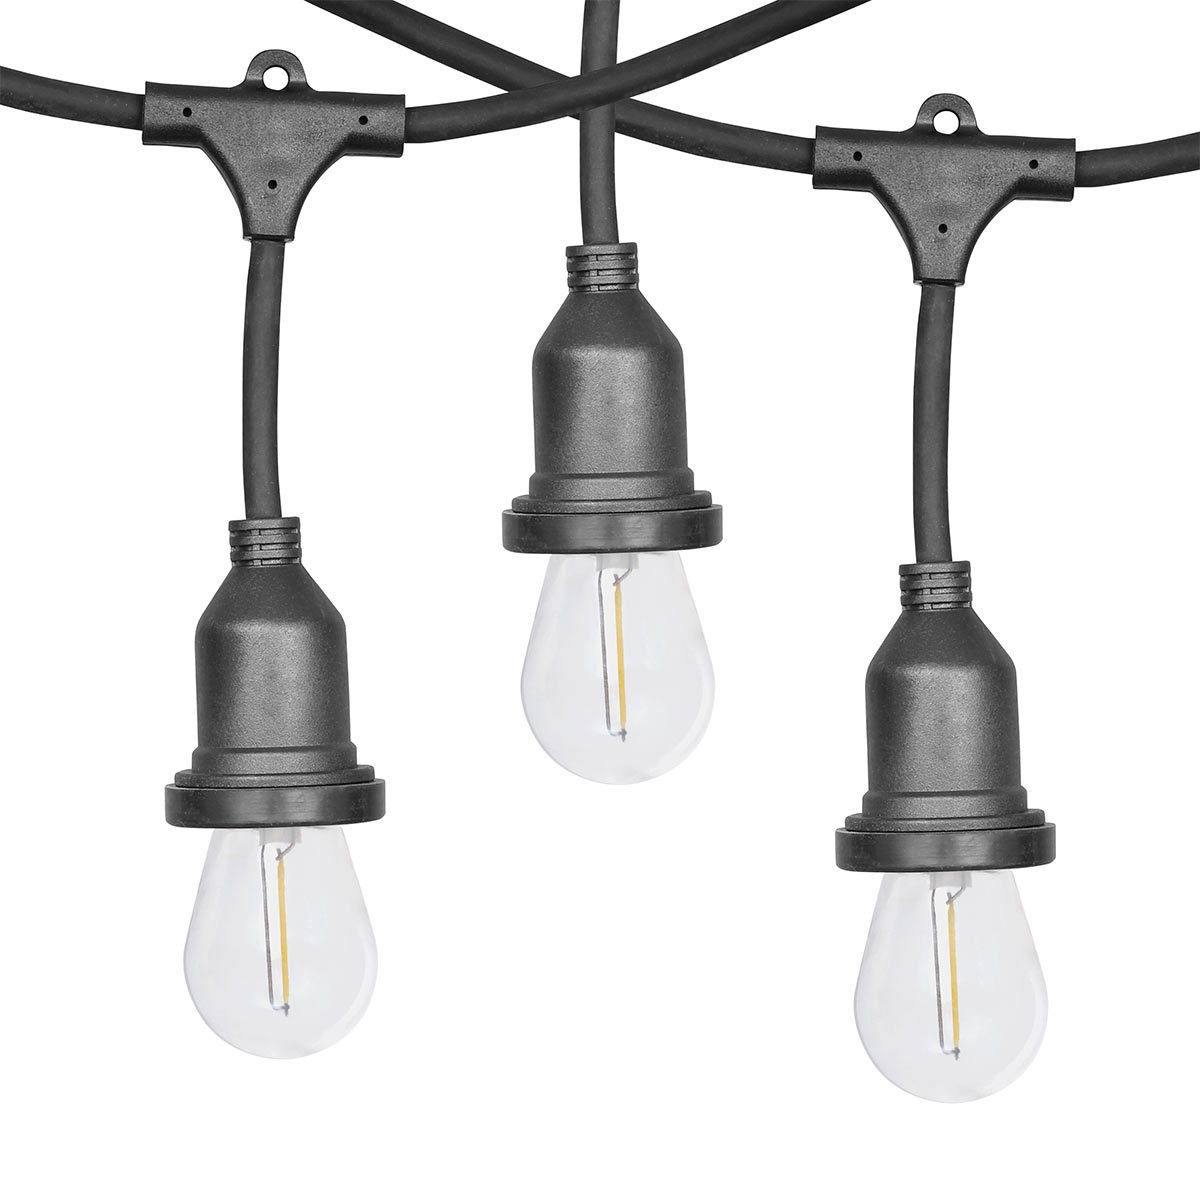 feit 24 pack led string light replacement bulbs costco uk